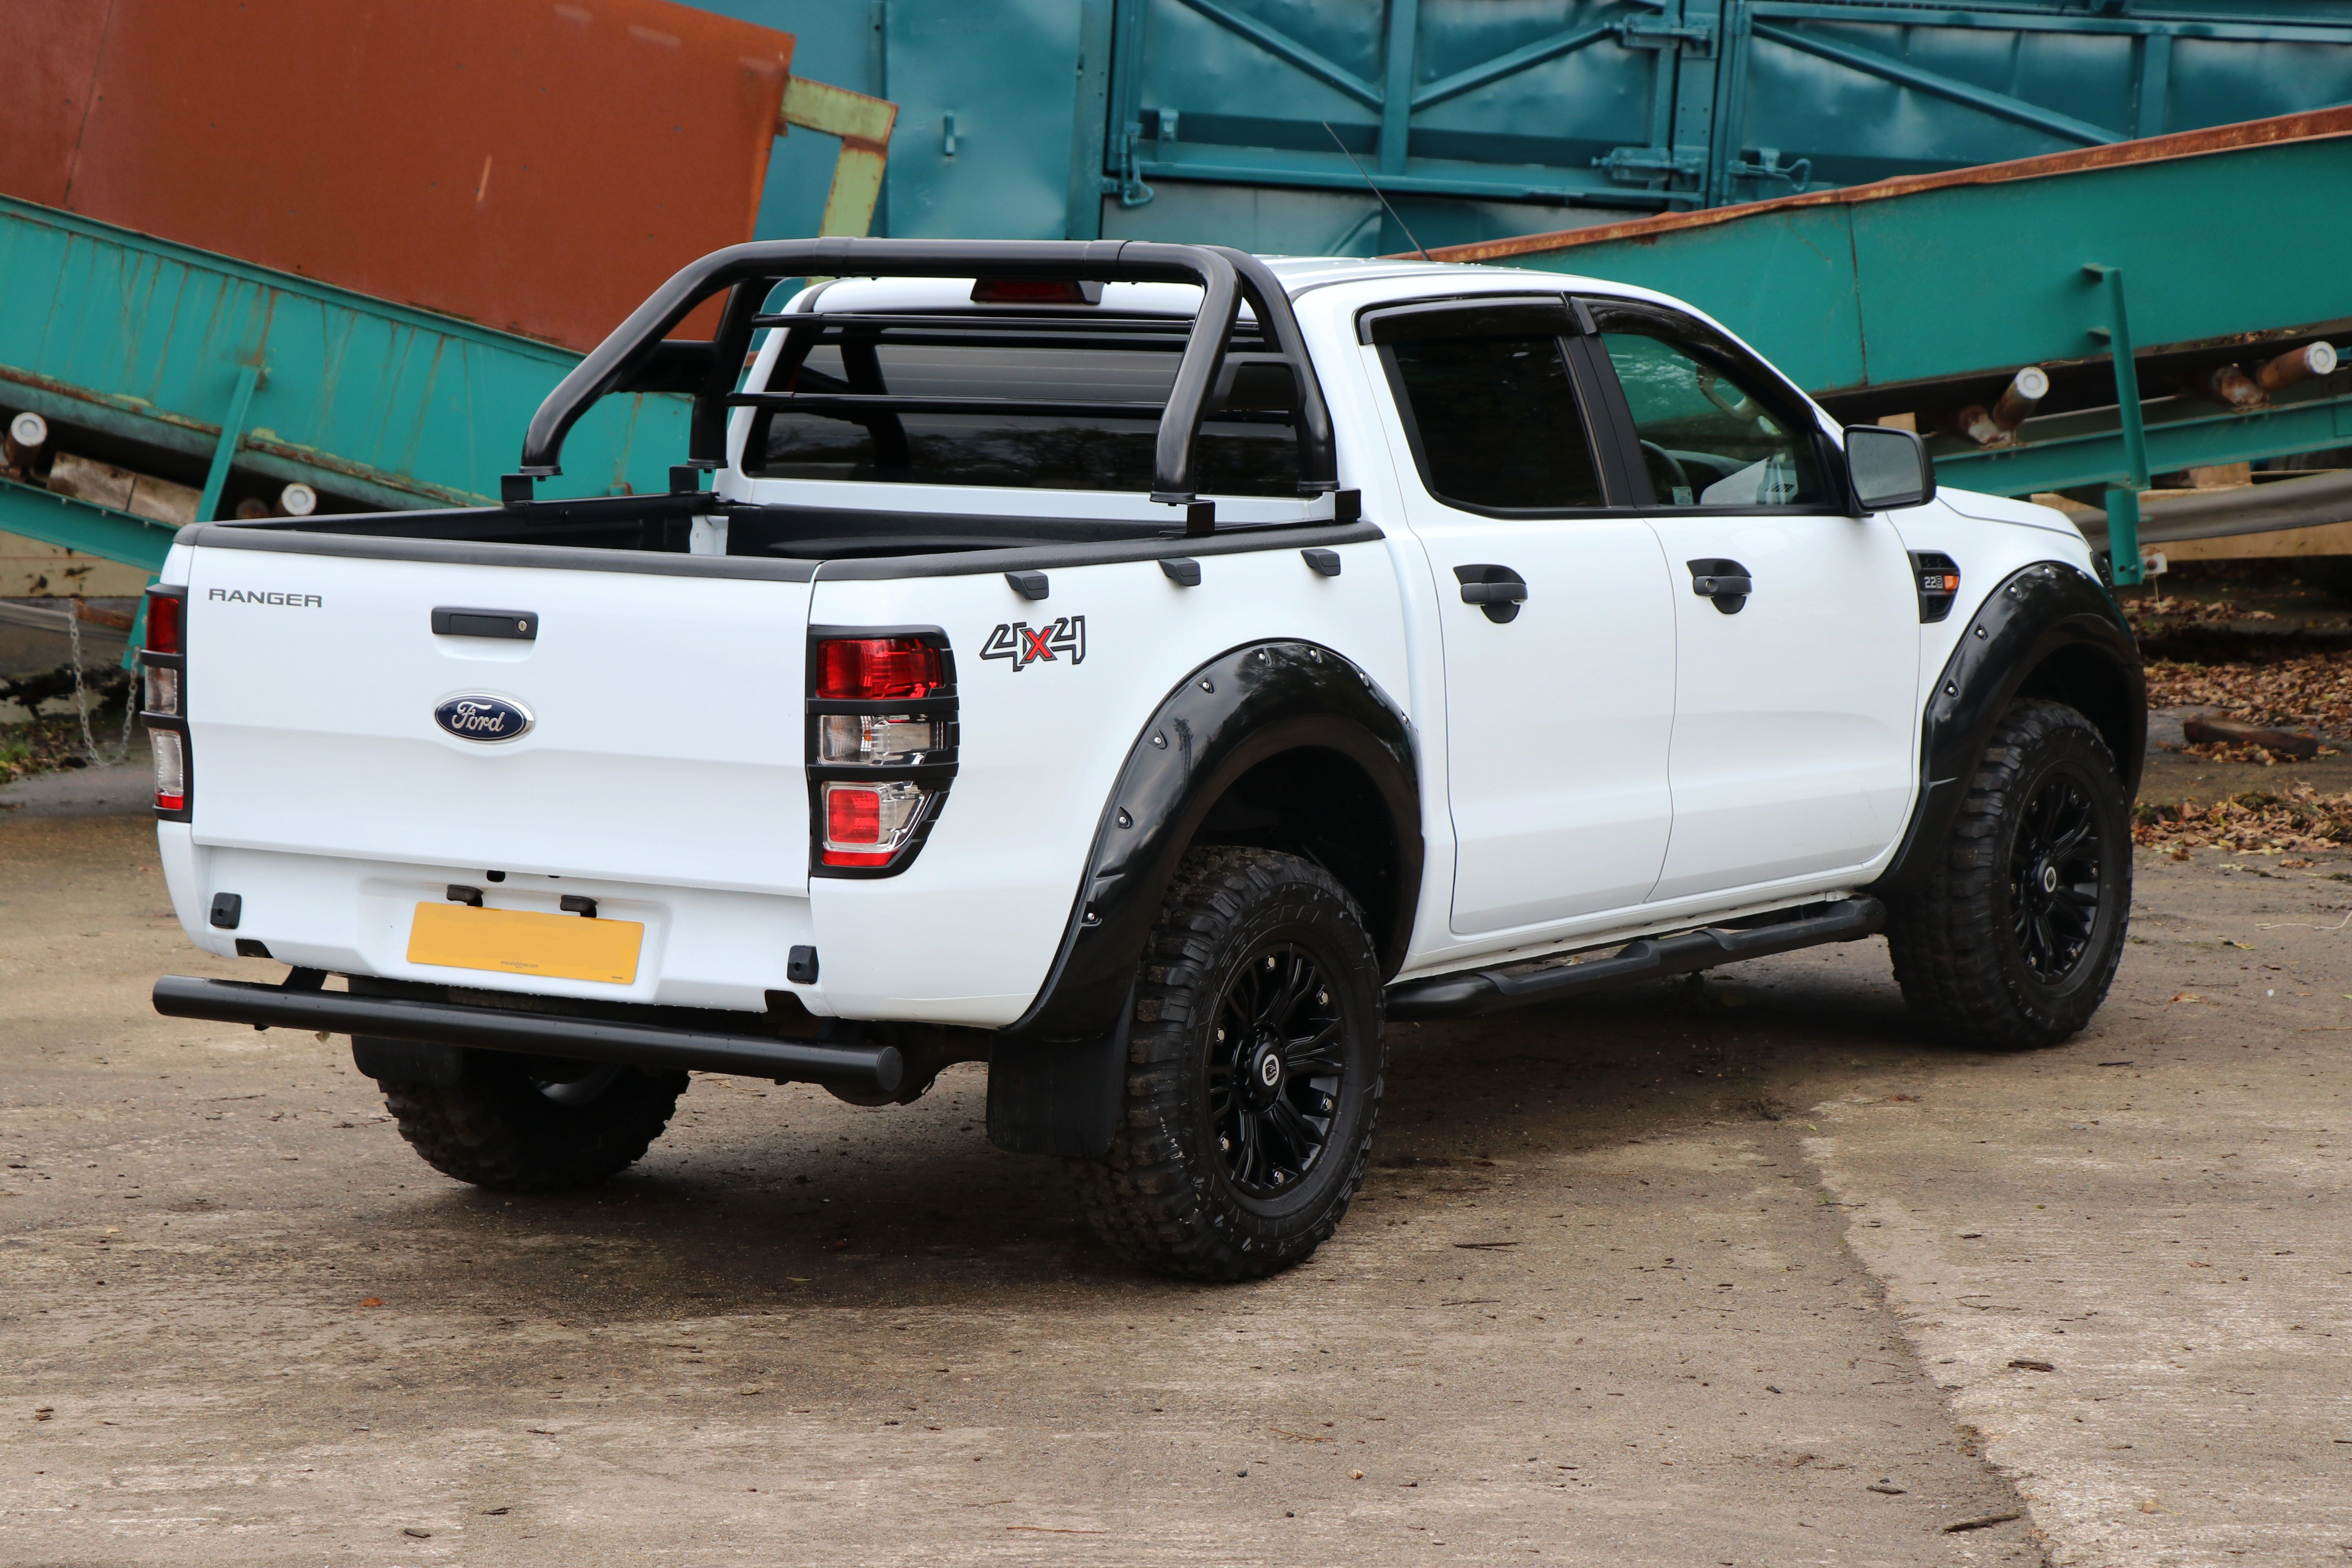 Introducing Our Seeker Raptor Conversion For Pre Owned T7 New Shape Ford Rangers This Seeker T7 Edition Comes With 16 Stee Ford Ranger Best Car Insurance Car